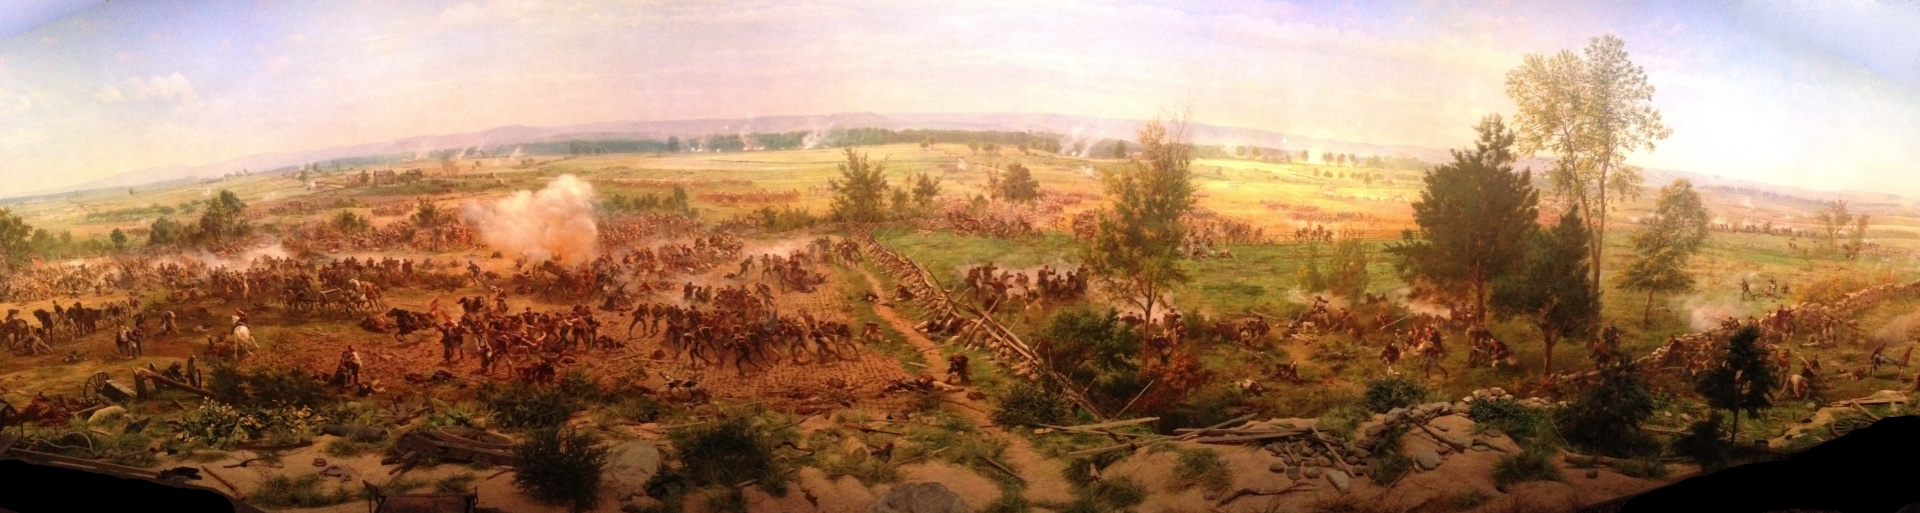 Paul Philippoteaux's Gettysburg Cyclorama